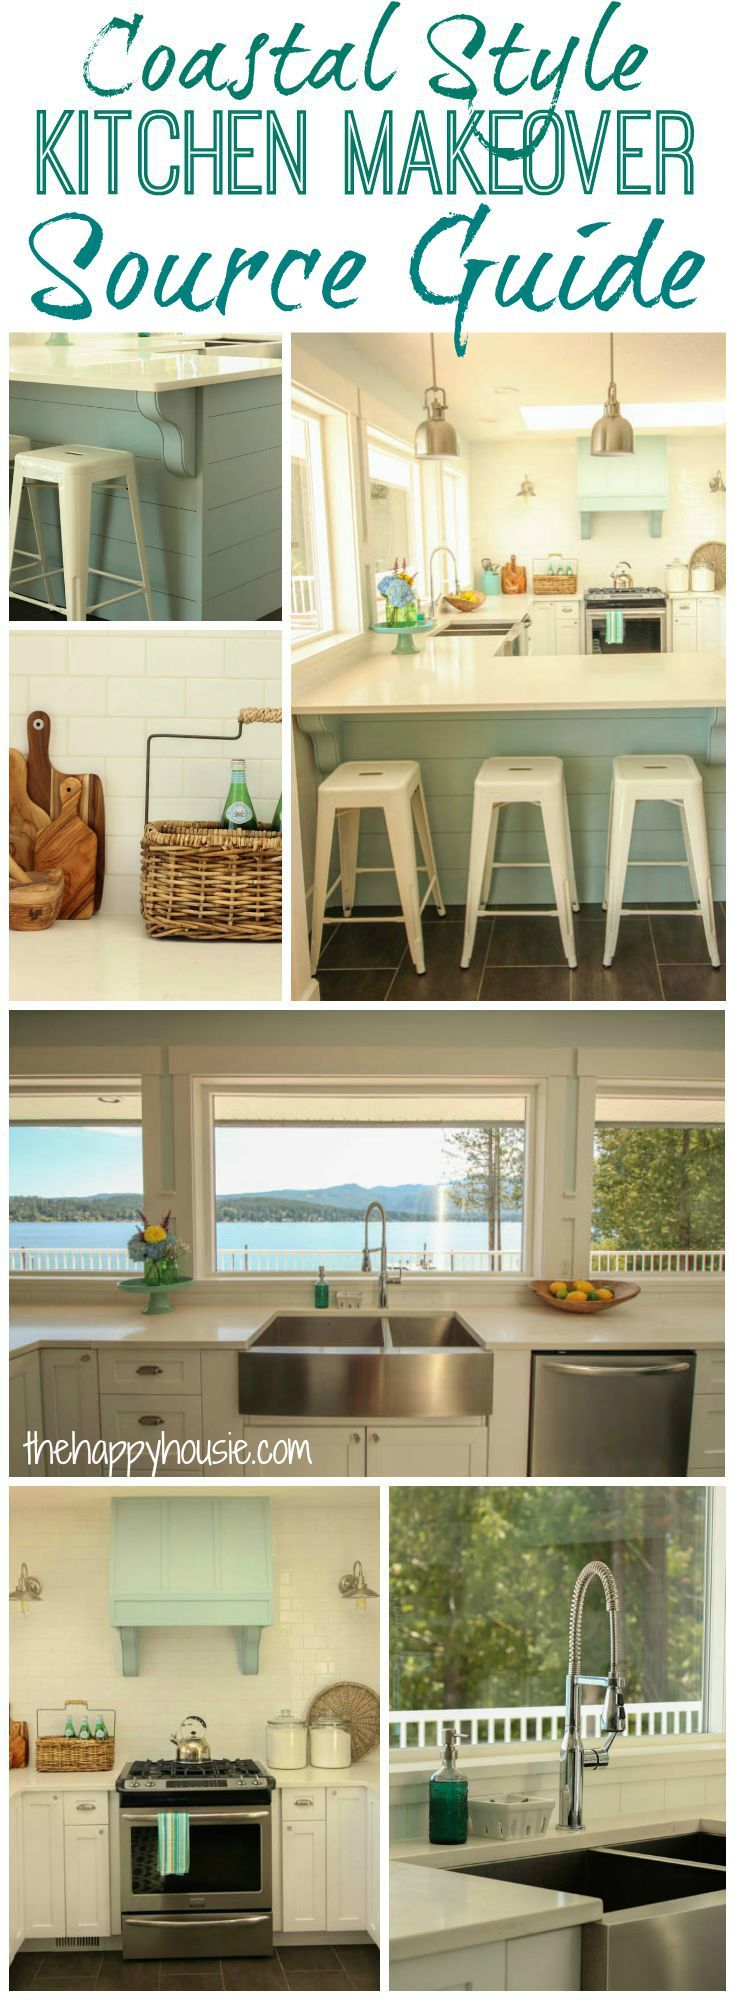 Source Guide for this-coastal-style-kitchen-makeover-with-white-shaker-cabinets-and-aqua-accents-at-thehappyhousie.com_